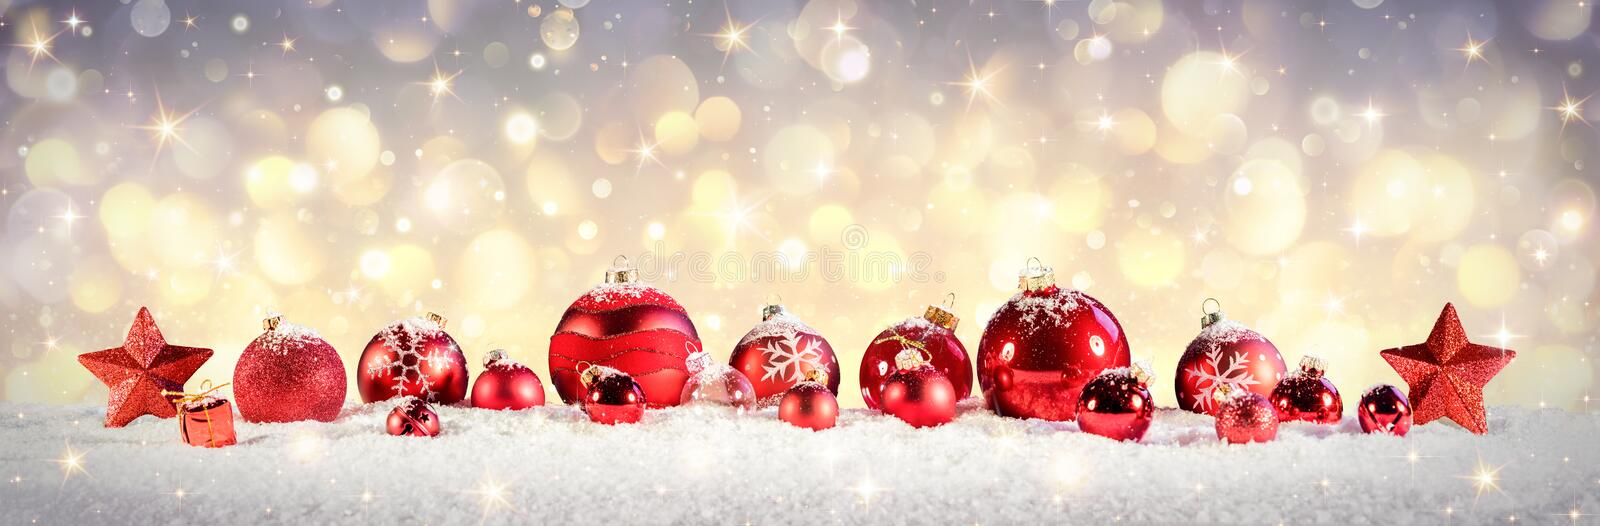 Download Vintage Christmas Baubles On Snow Stock Photo - Image of stars, banner: 63569578